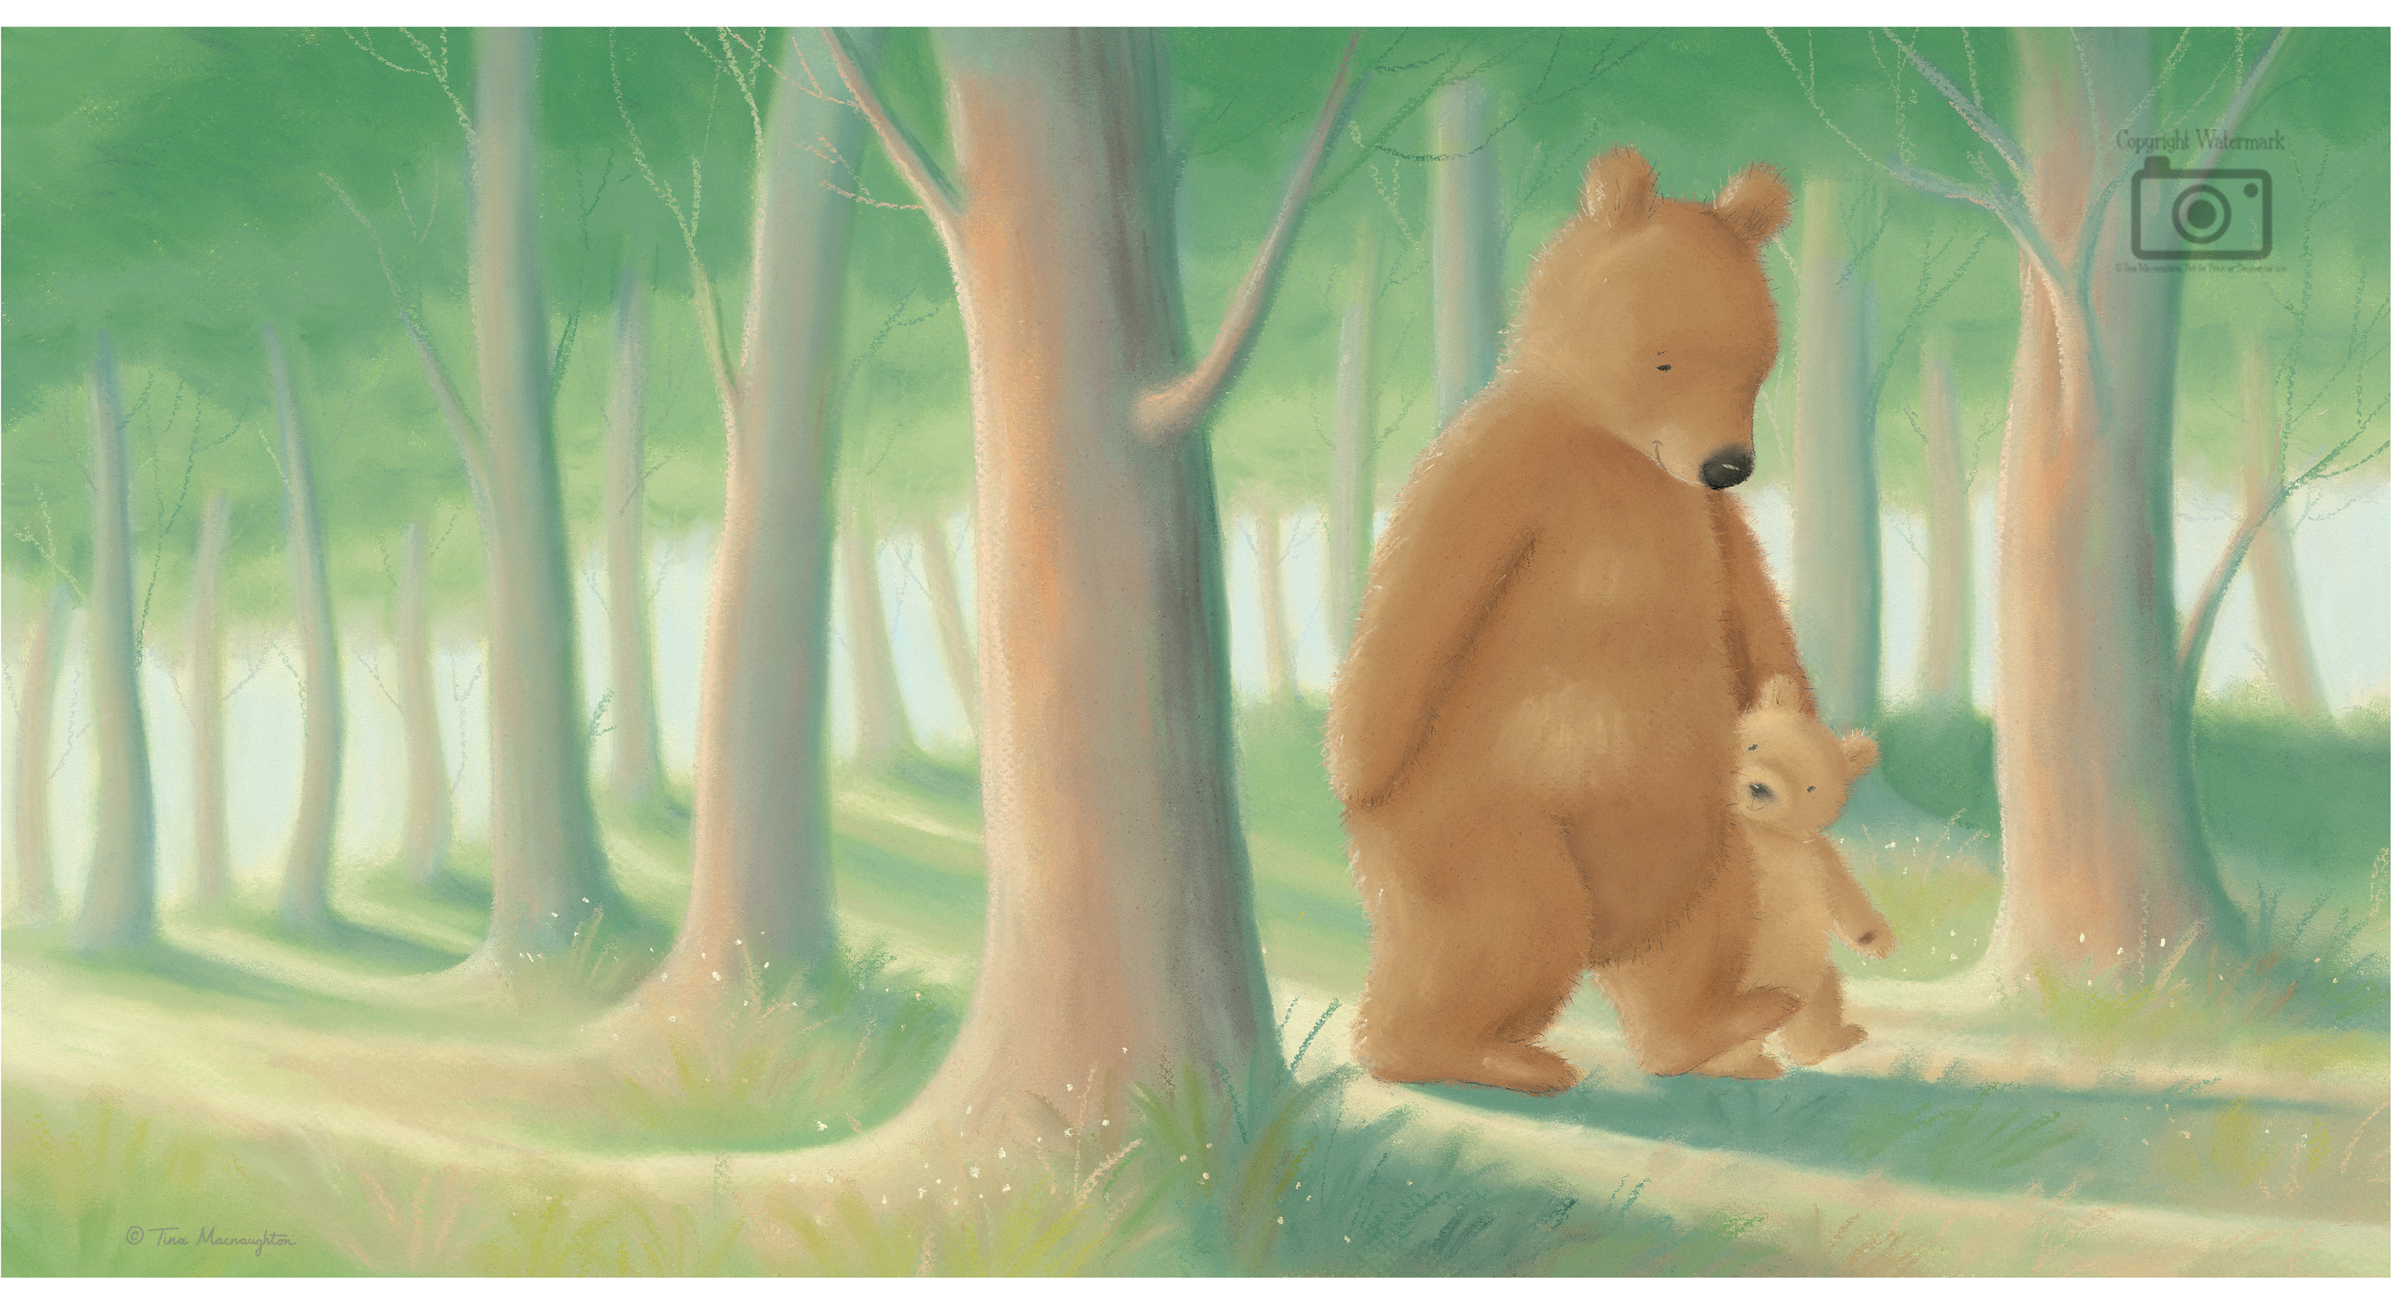 My Daddy and Me illustrated by Tina Macnaughton.